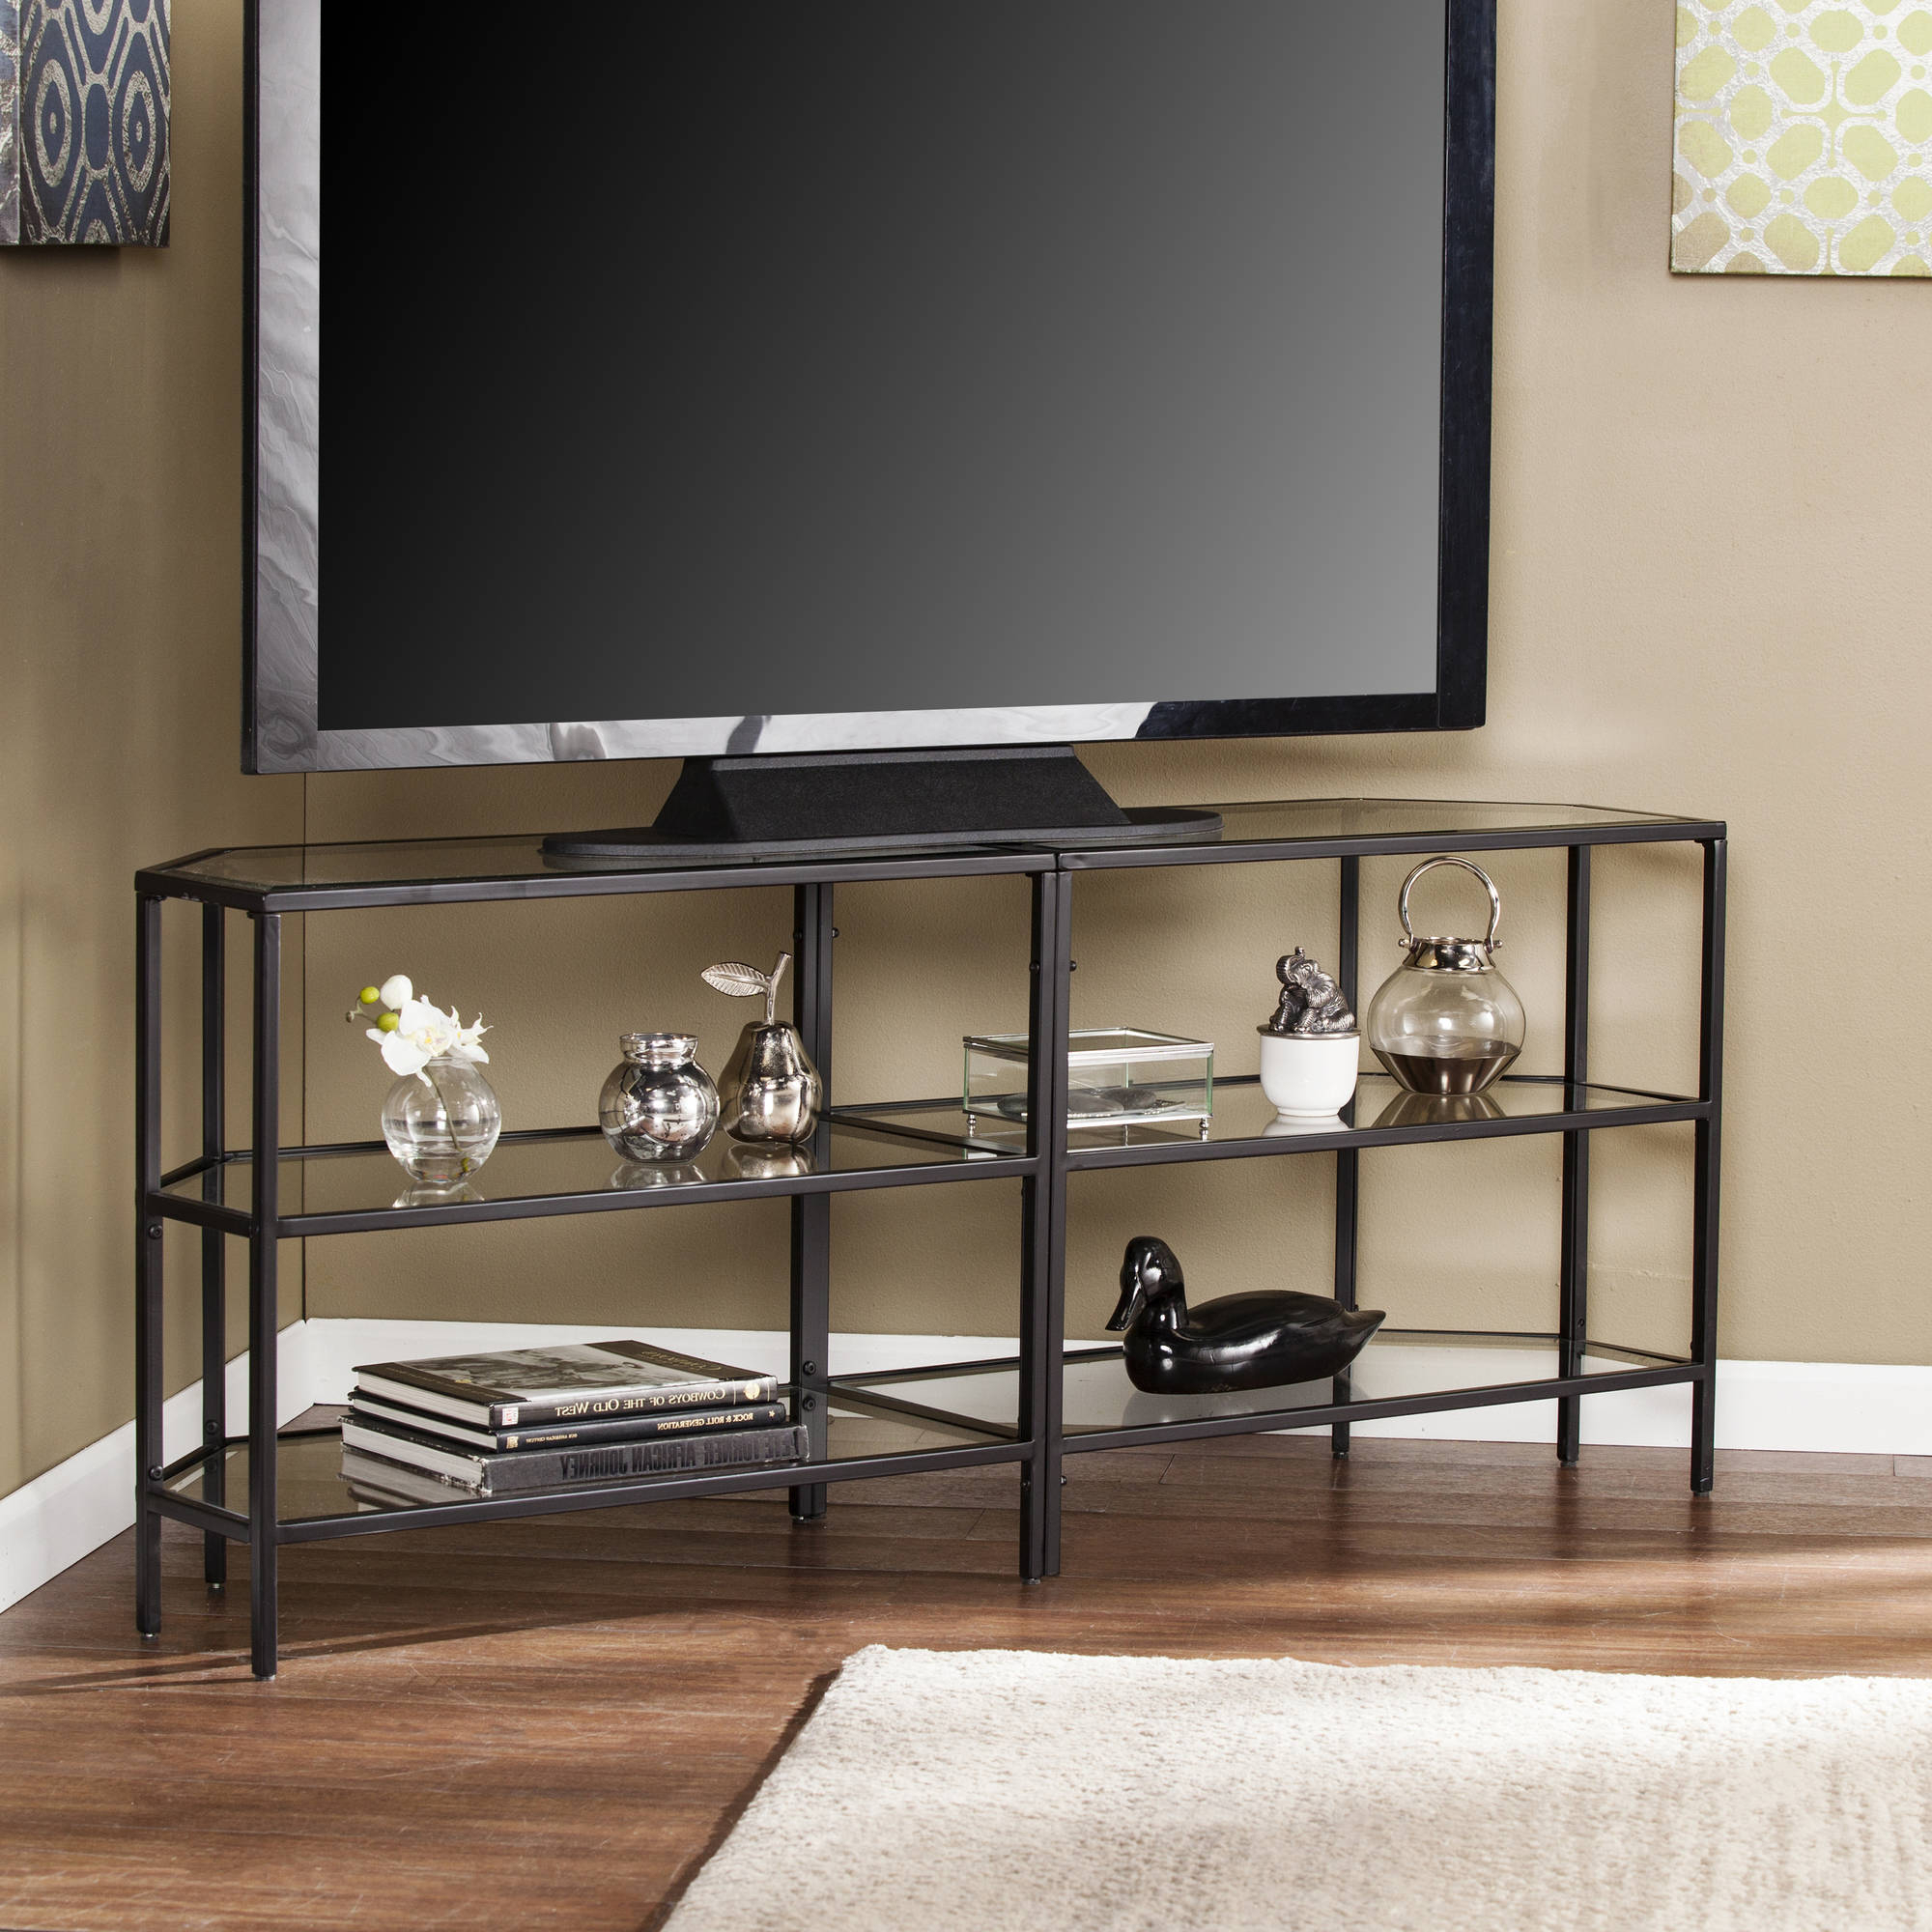 """Kamari Tv Stands For Tvs Up To 58"""" With Regard To Latest Matte Black Danae Metal/glass Corner Optional Tv Stand For (View 20 of 25)"""